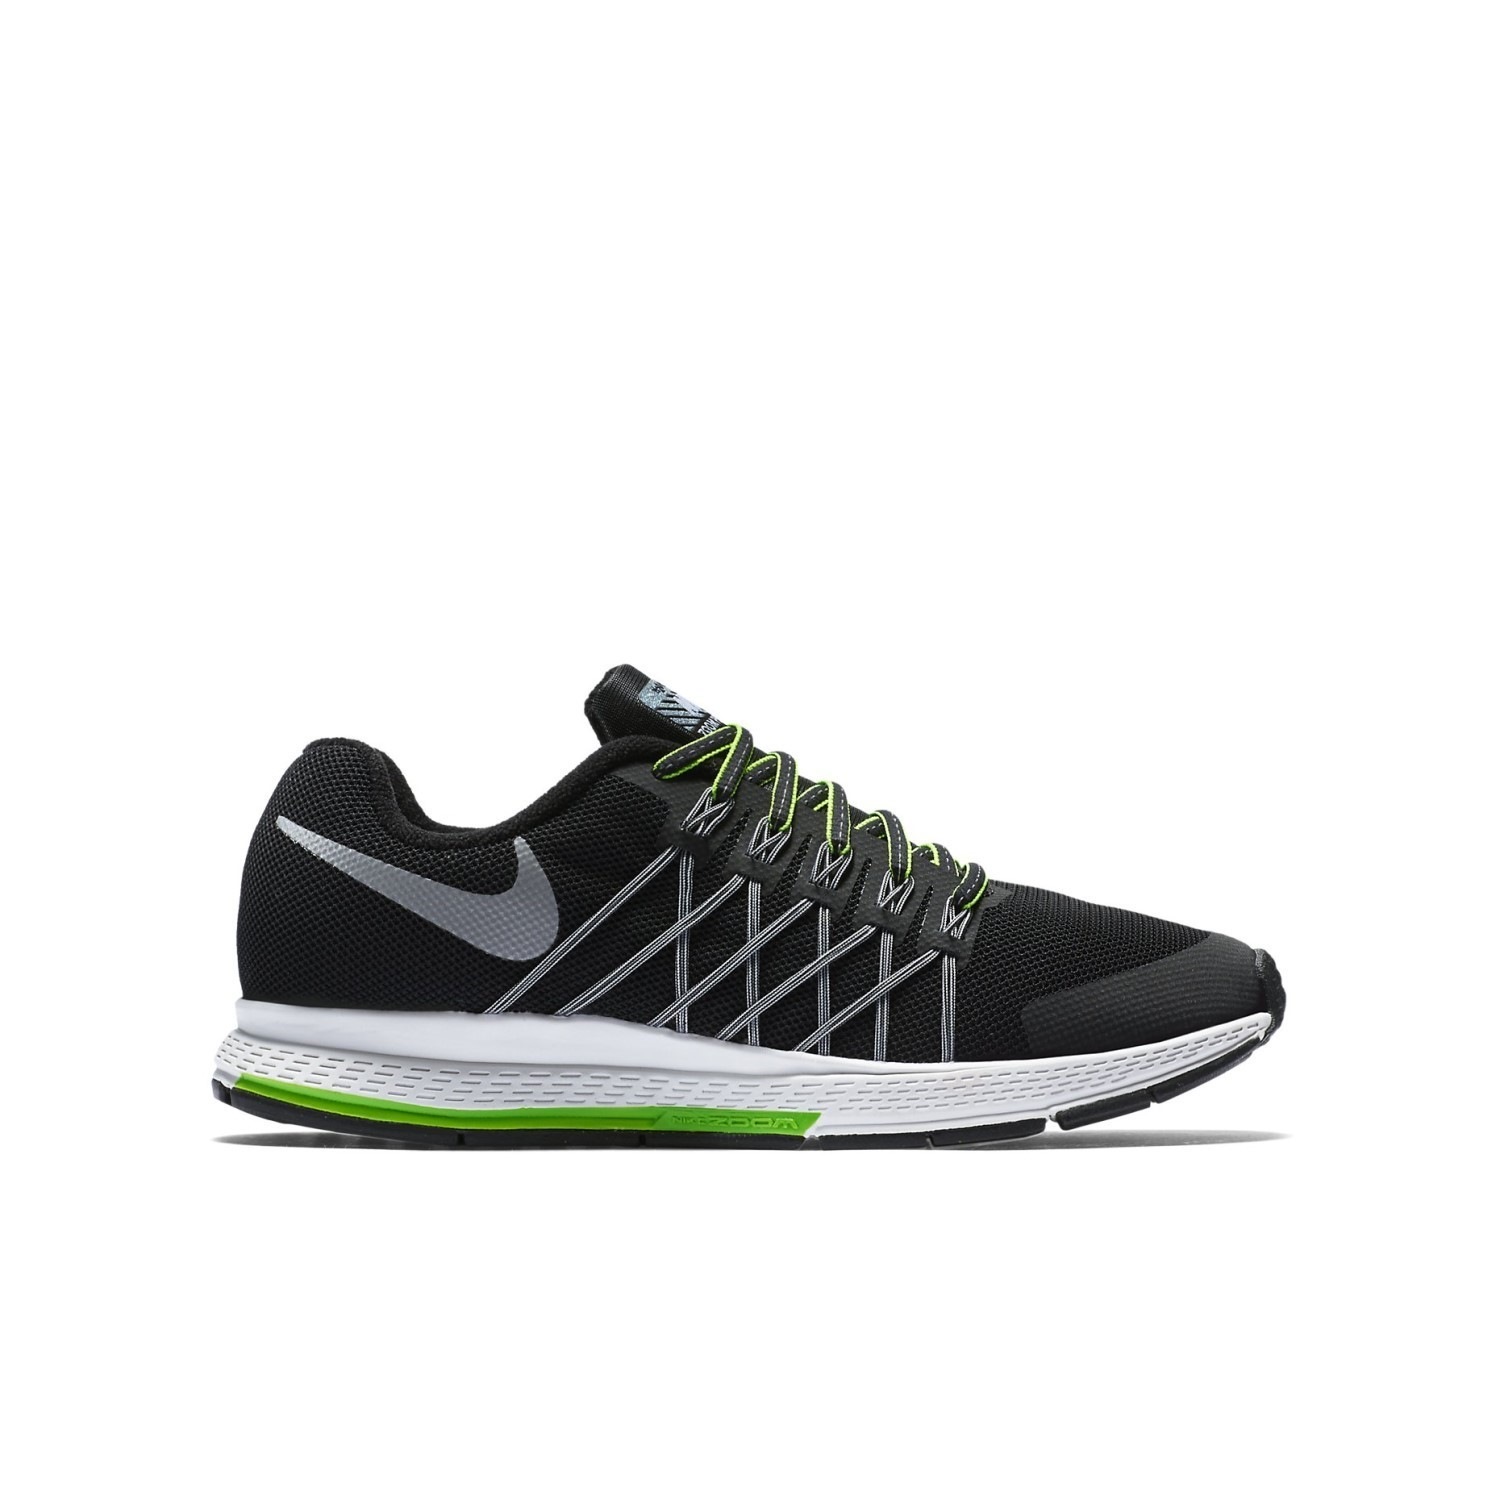 huge selection of 9d2d8 d42c9 Nike Zoom Pegasus 32 Flash (GS) - Kids Boys Running Shoes - Black